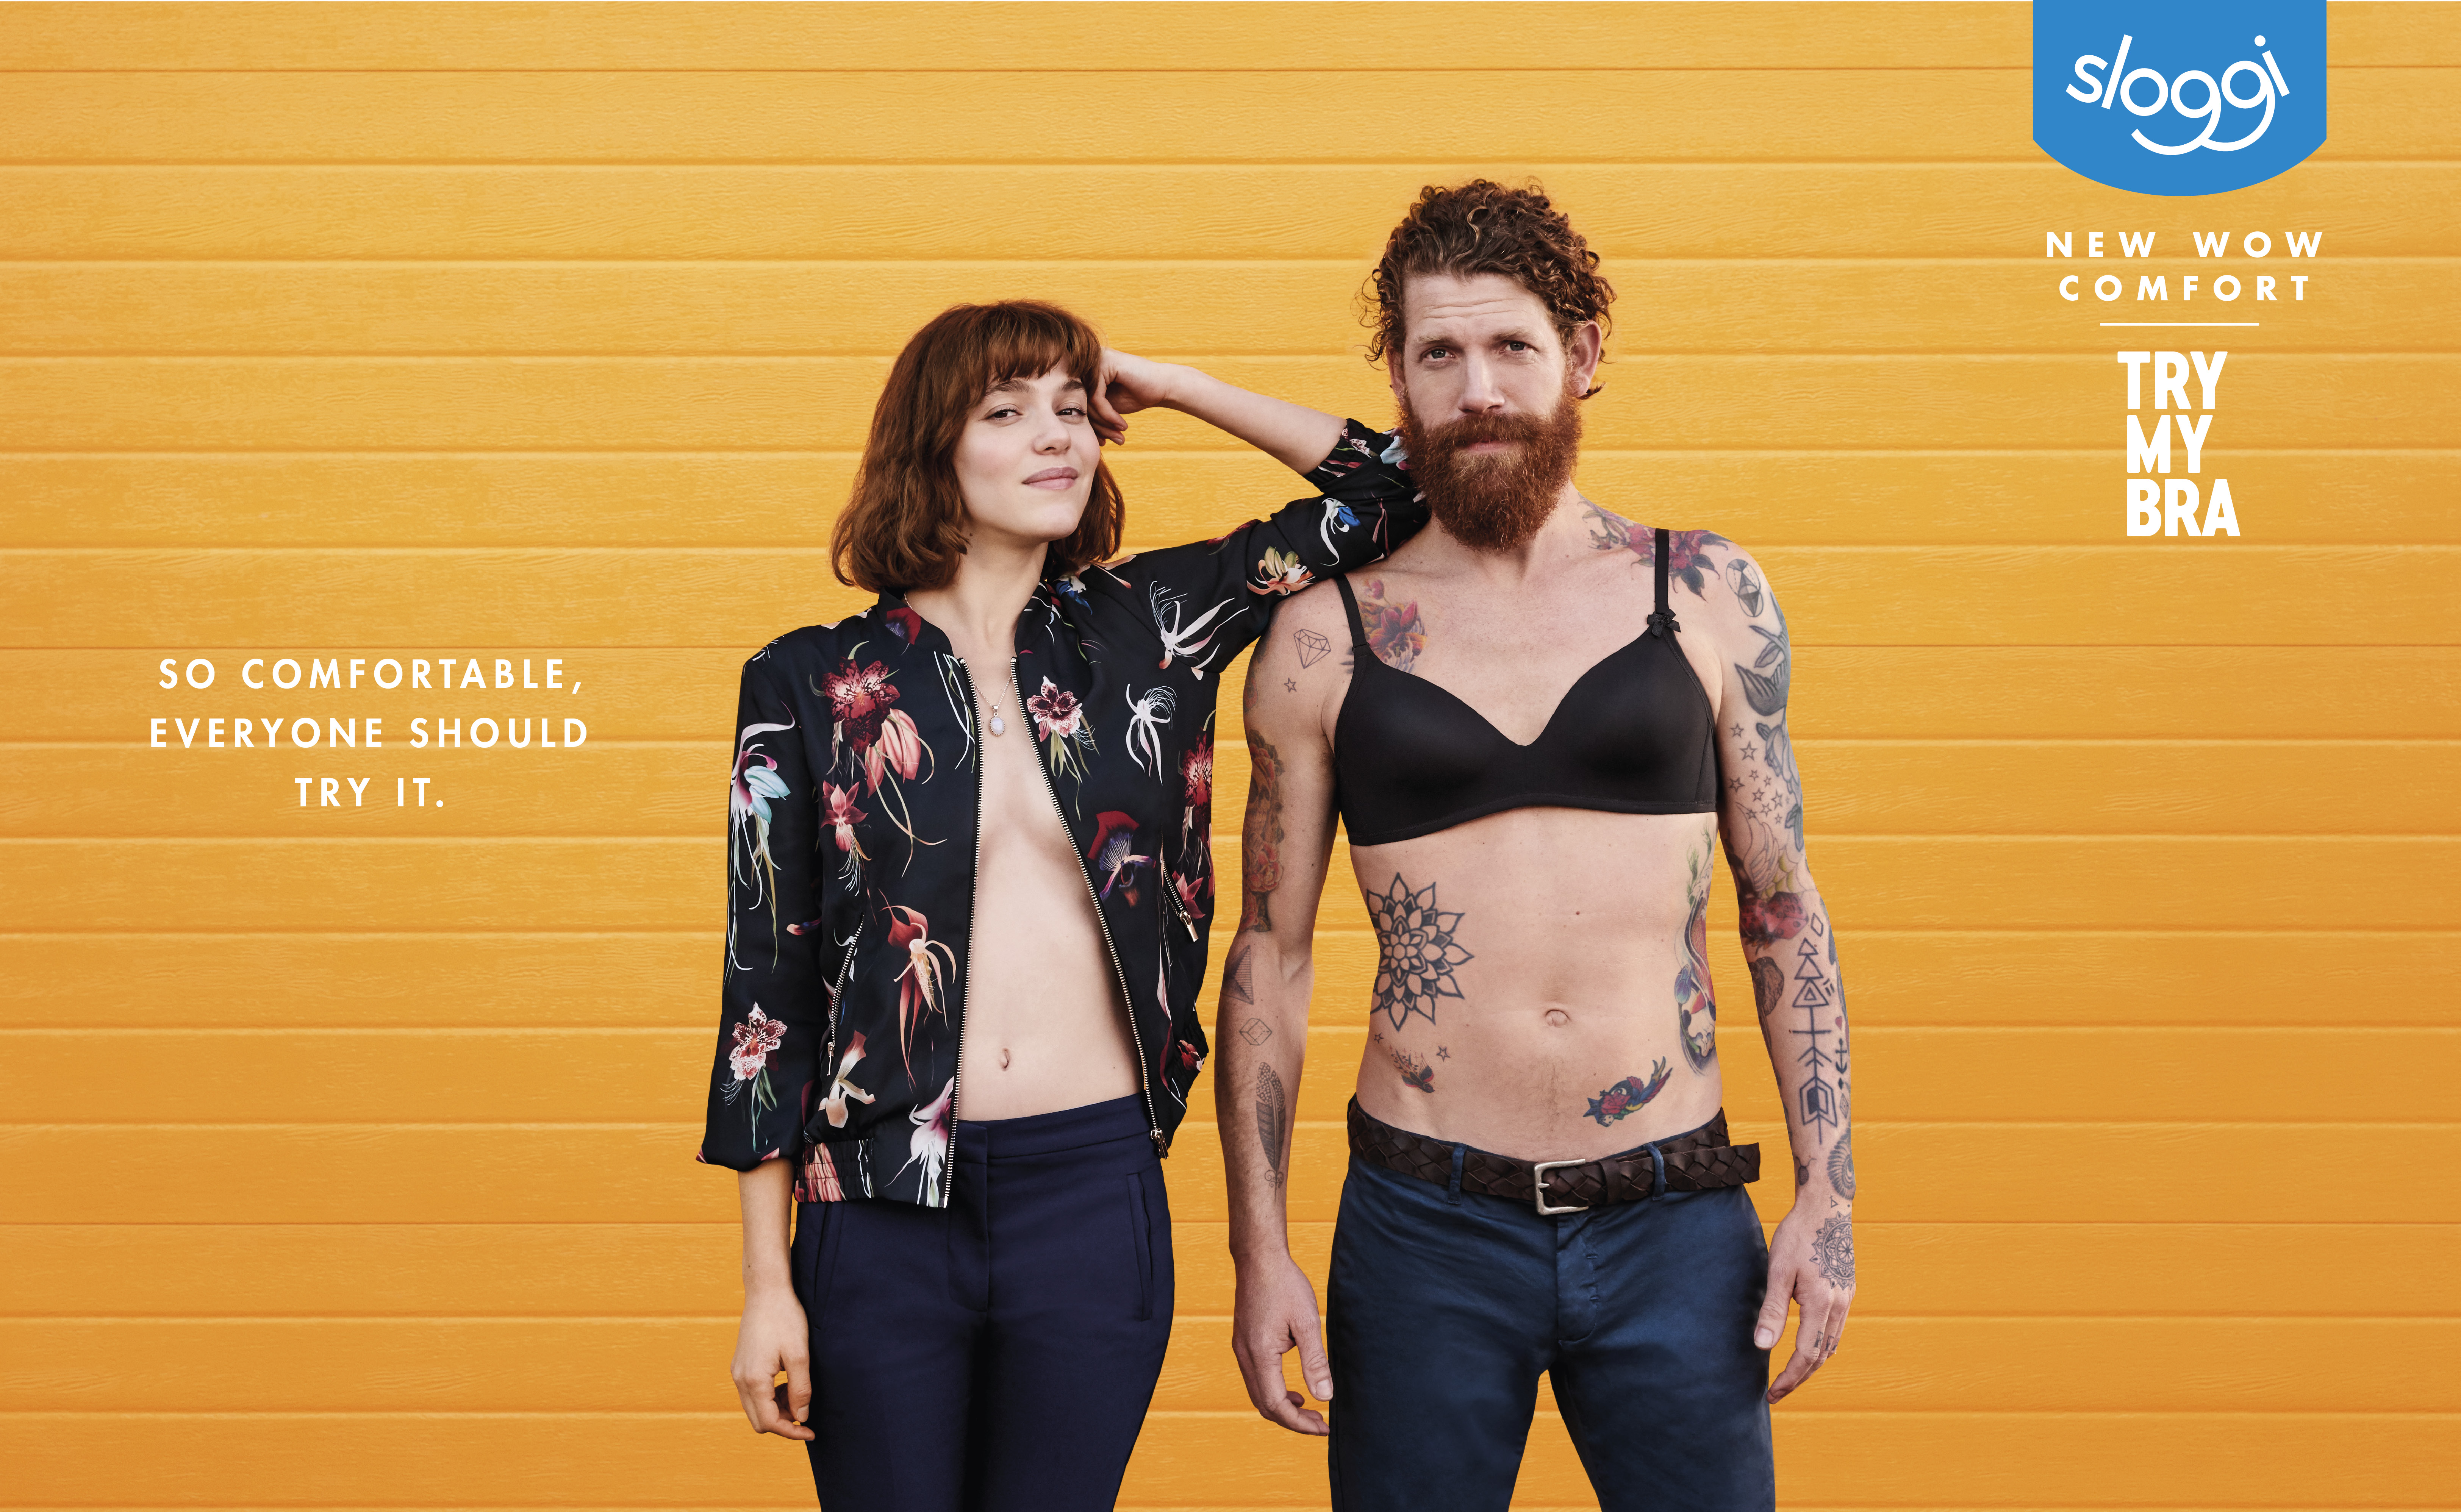 Sloggi_TRY MY BRA_LEAD PRINT AD